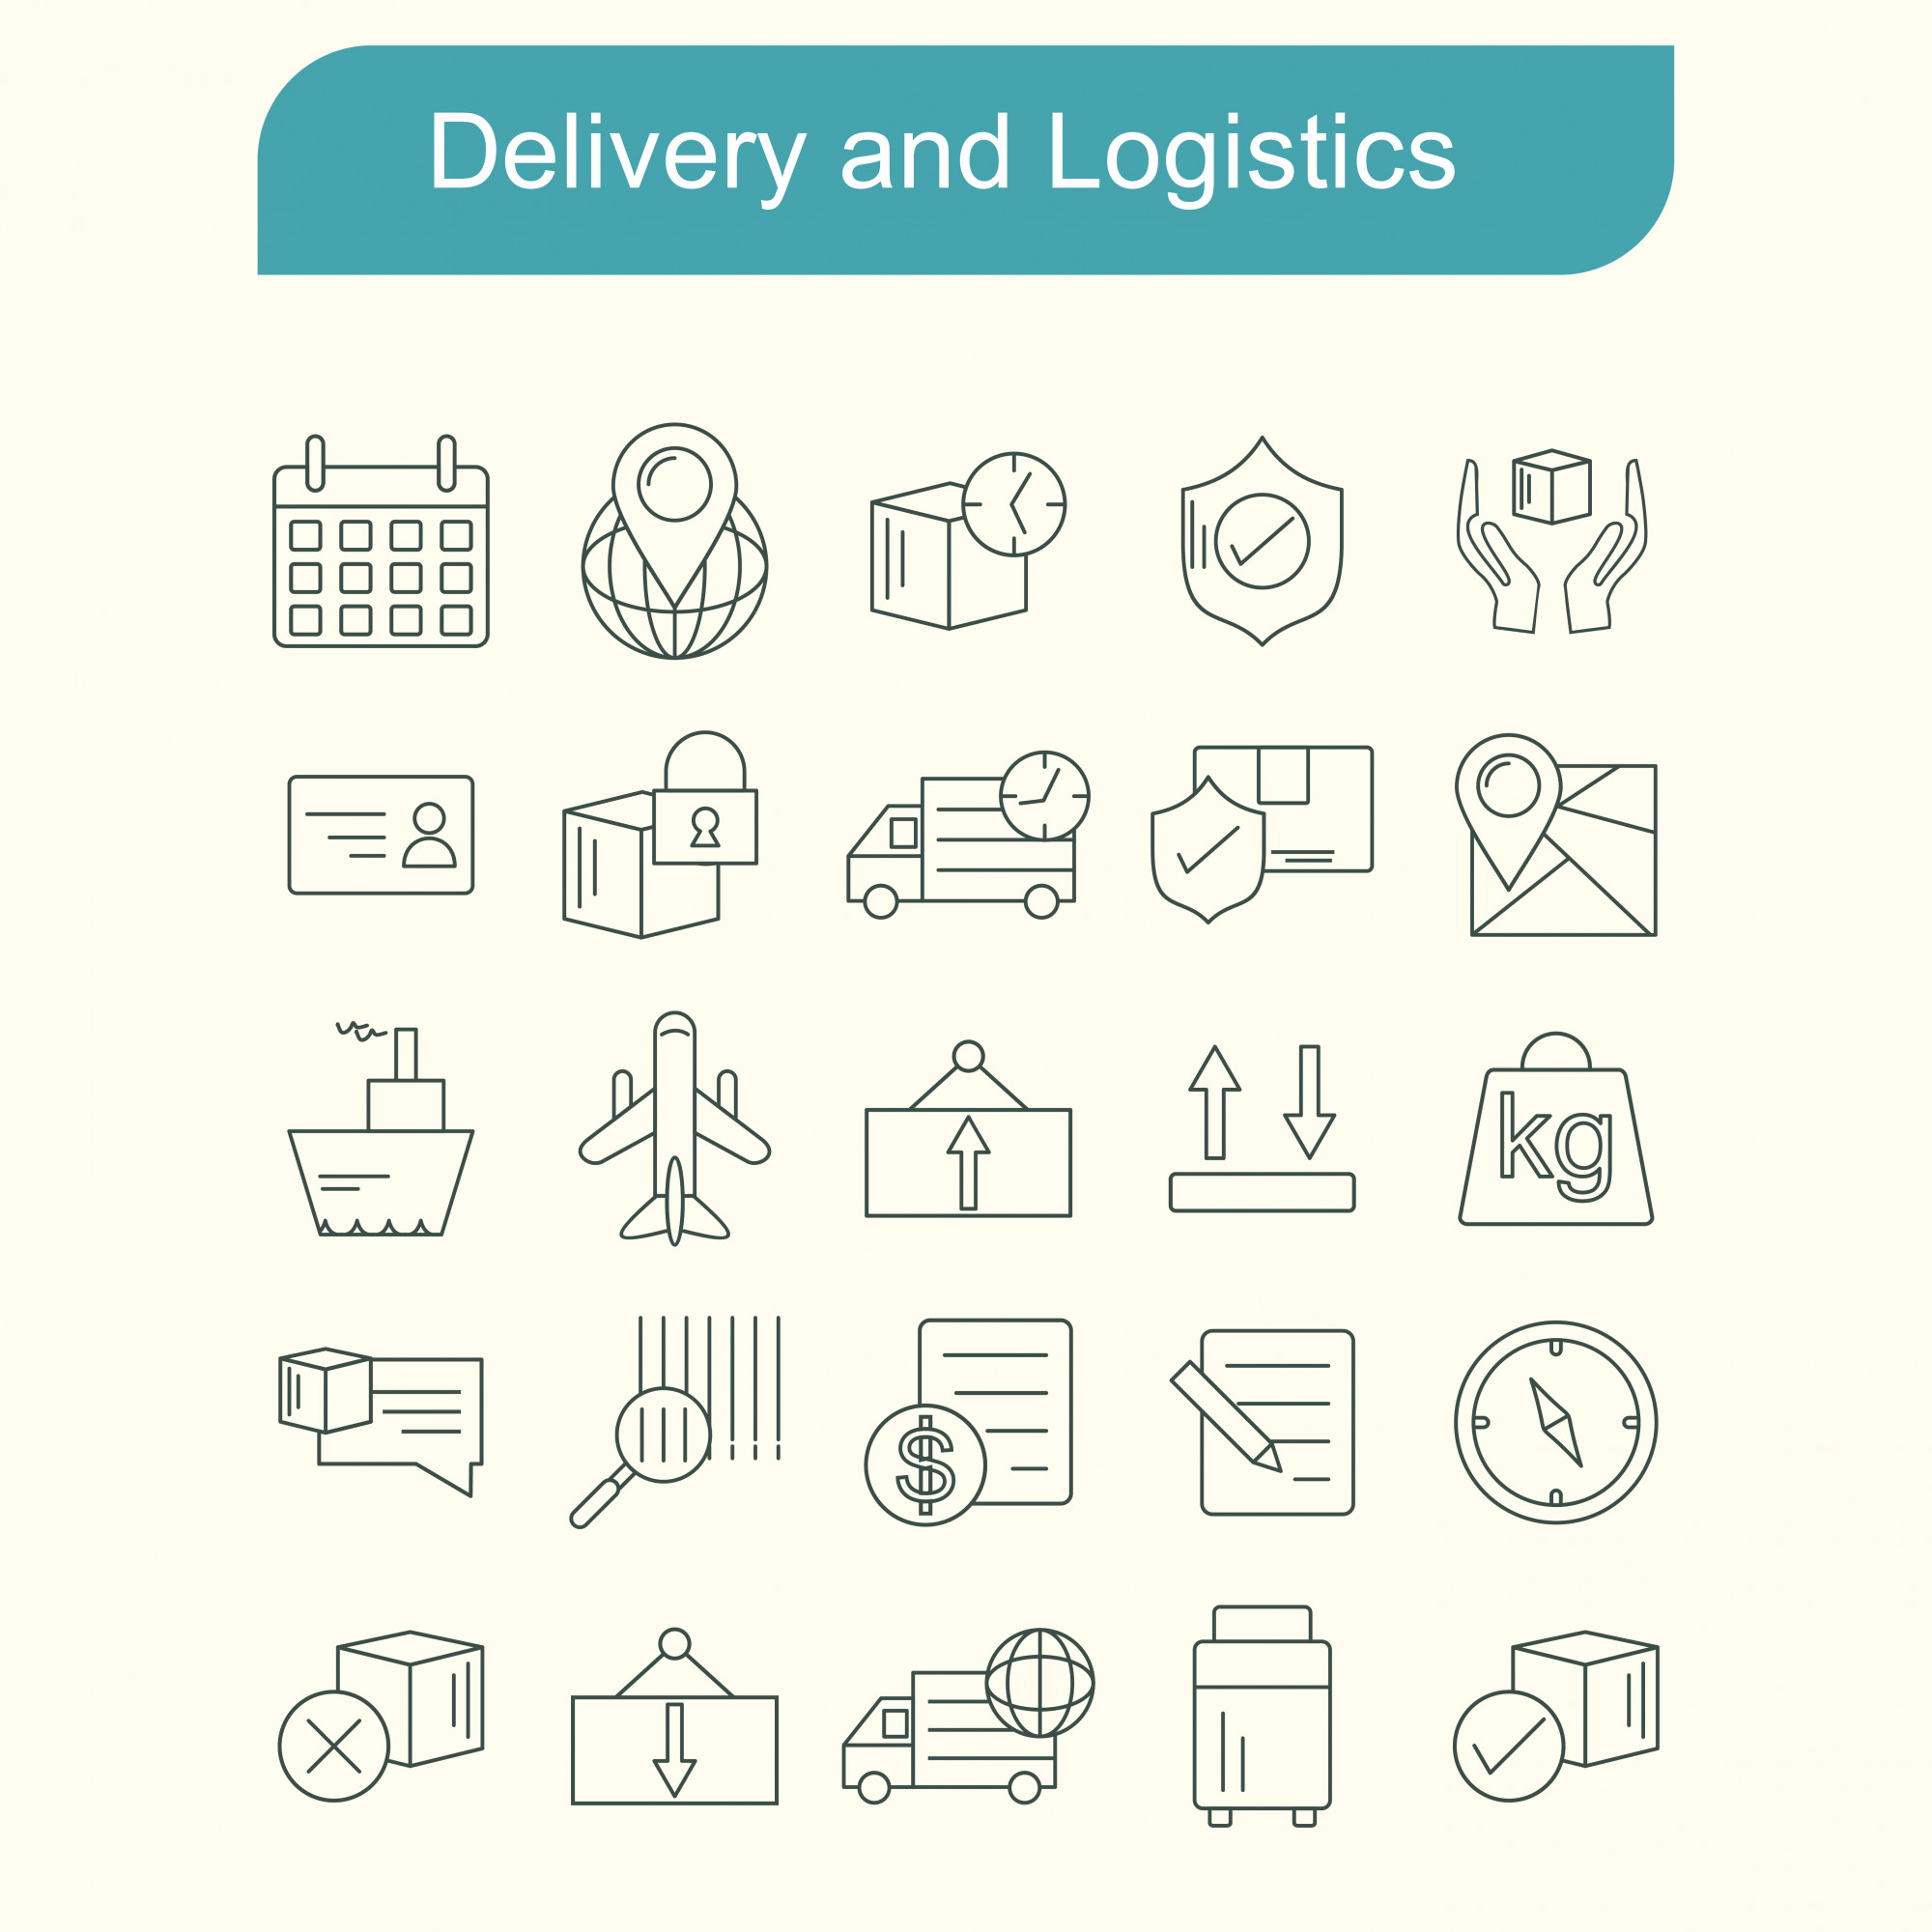 Delivery and Logistics icons set vector